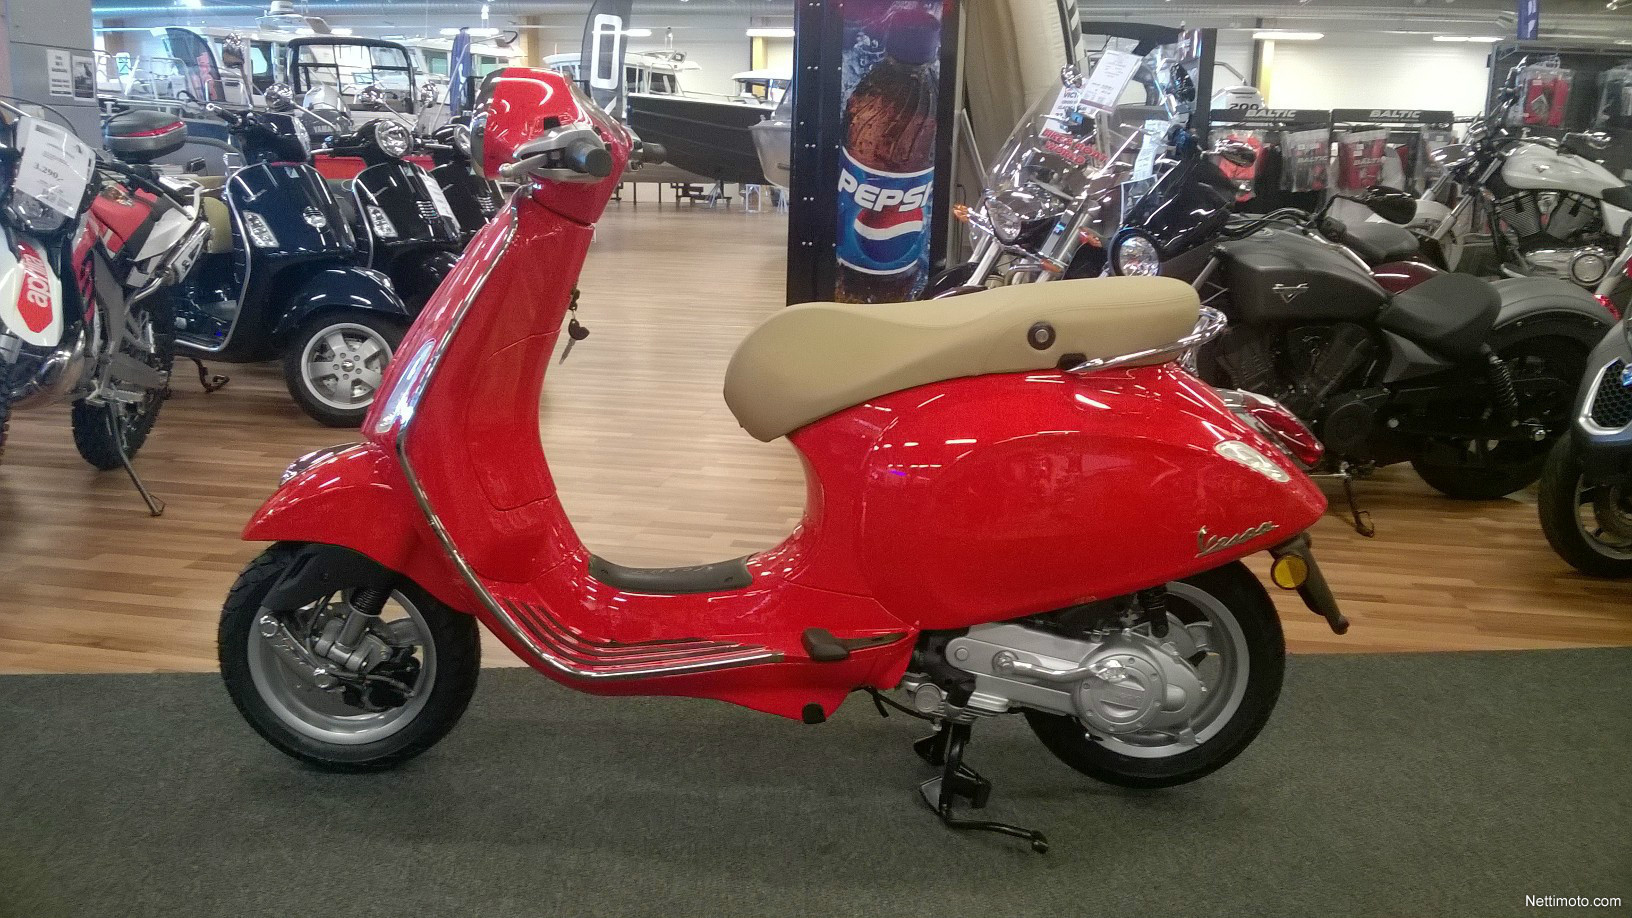 vespa primavera k siraha 0 korko 0 50 cm 2017 turku scooter nettimoto. Black Bedroom Furniture Sets. Home Design Ideas